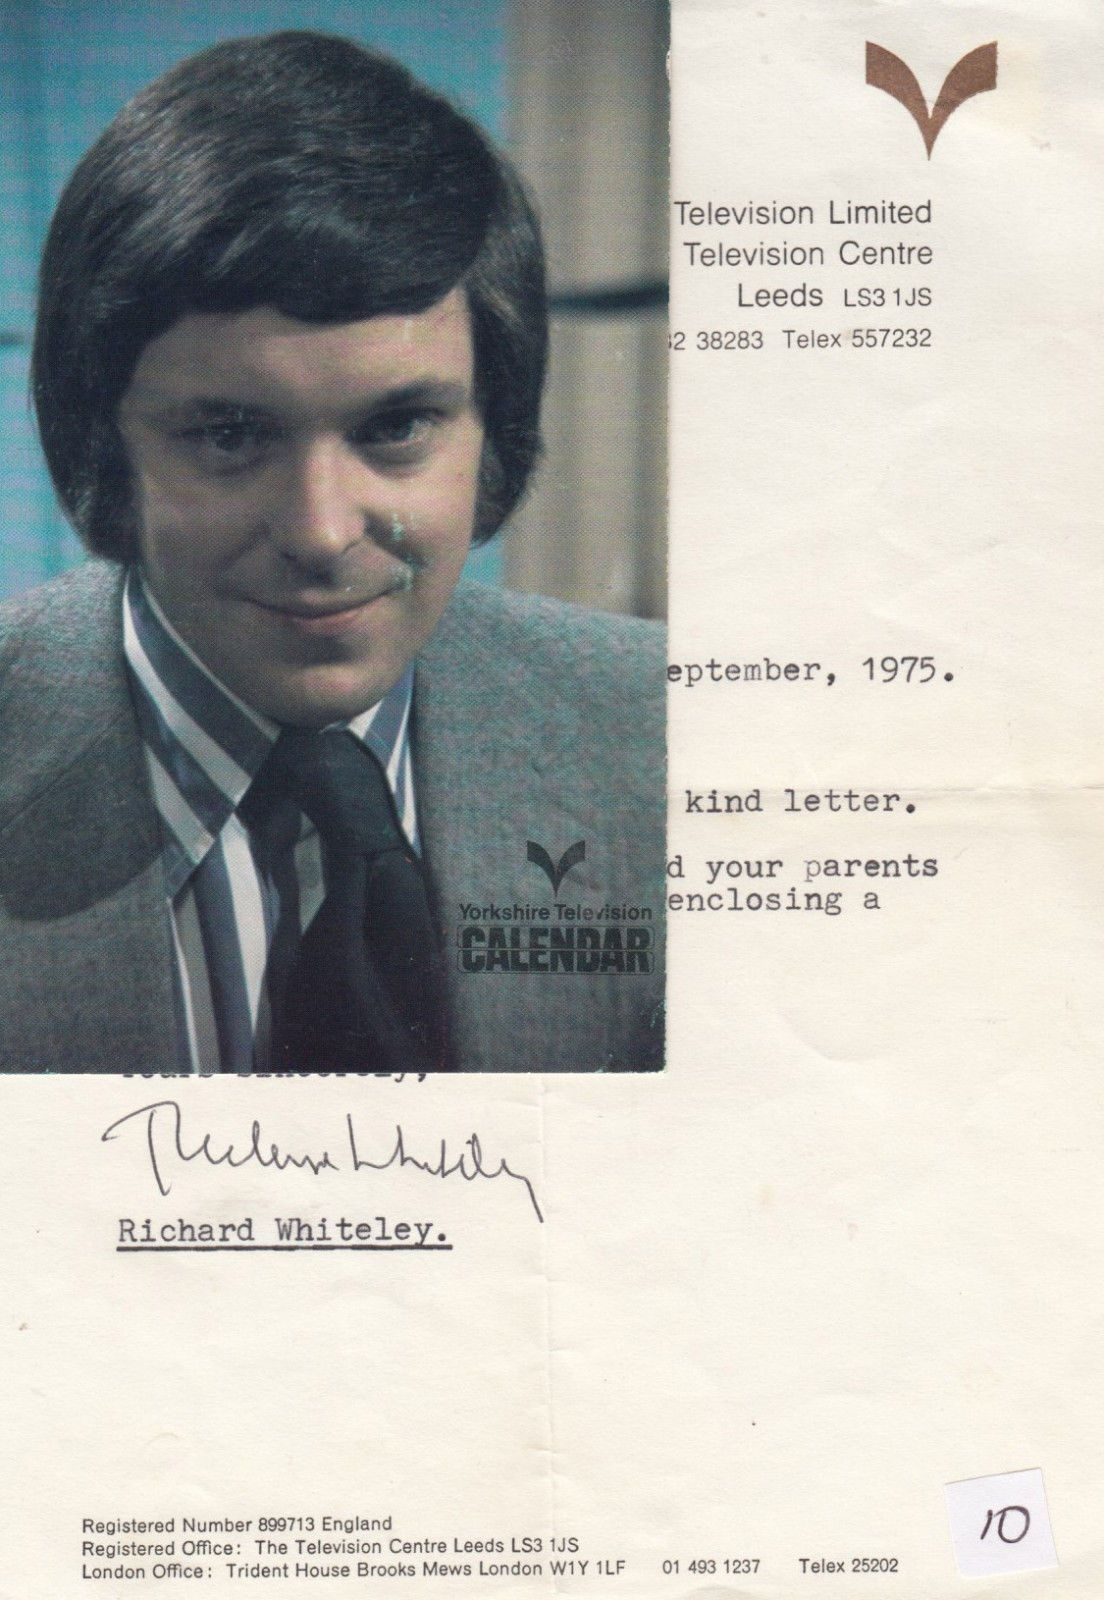 Richard Whiteley Of Countdown Tv Show Calendar Antique Hand Signed Photo  Letter_Calendar Countdown Tv Show